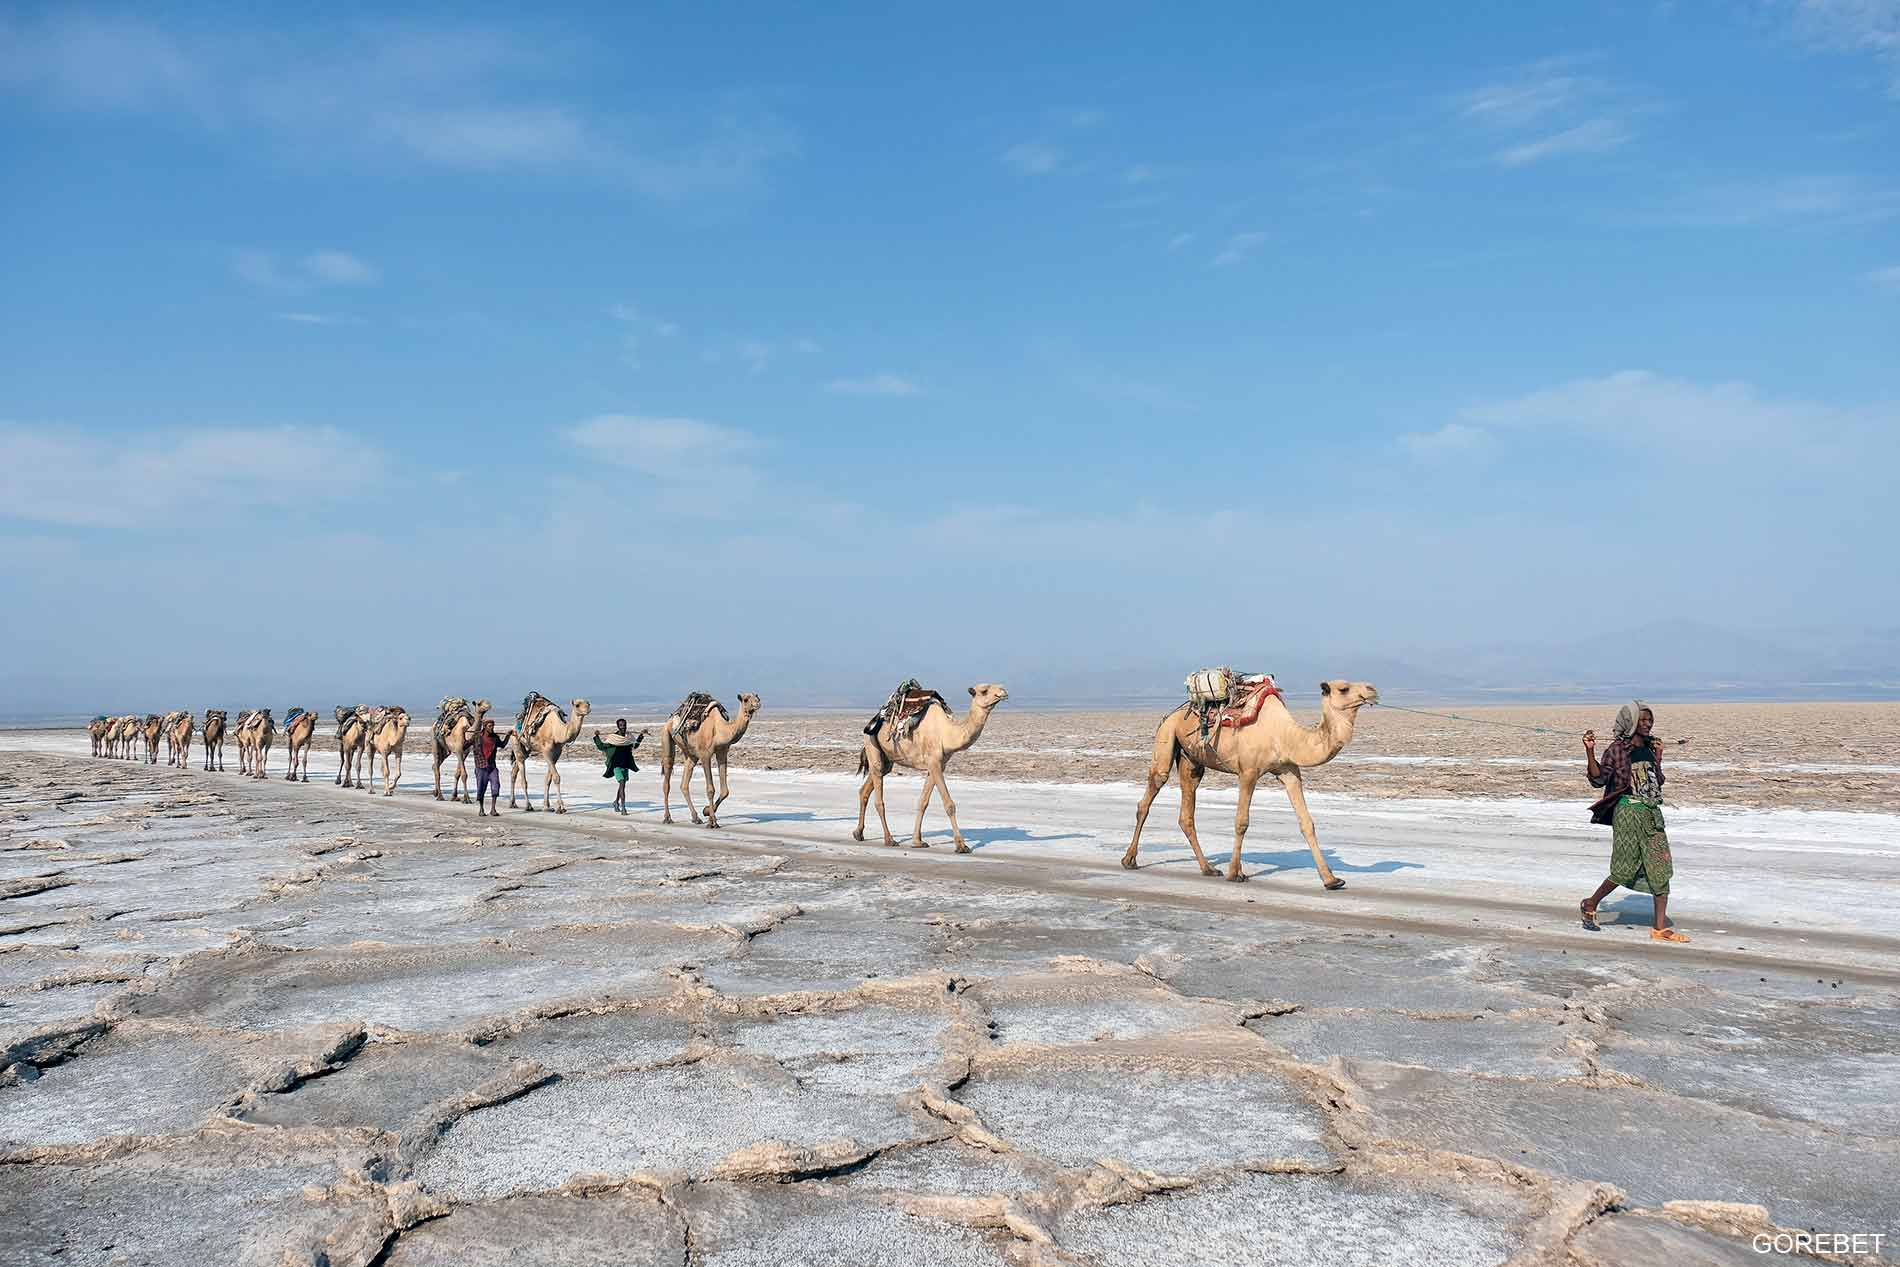 Afar Ethiopia 101: A full on the road guide to visiting Afar region